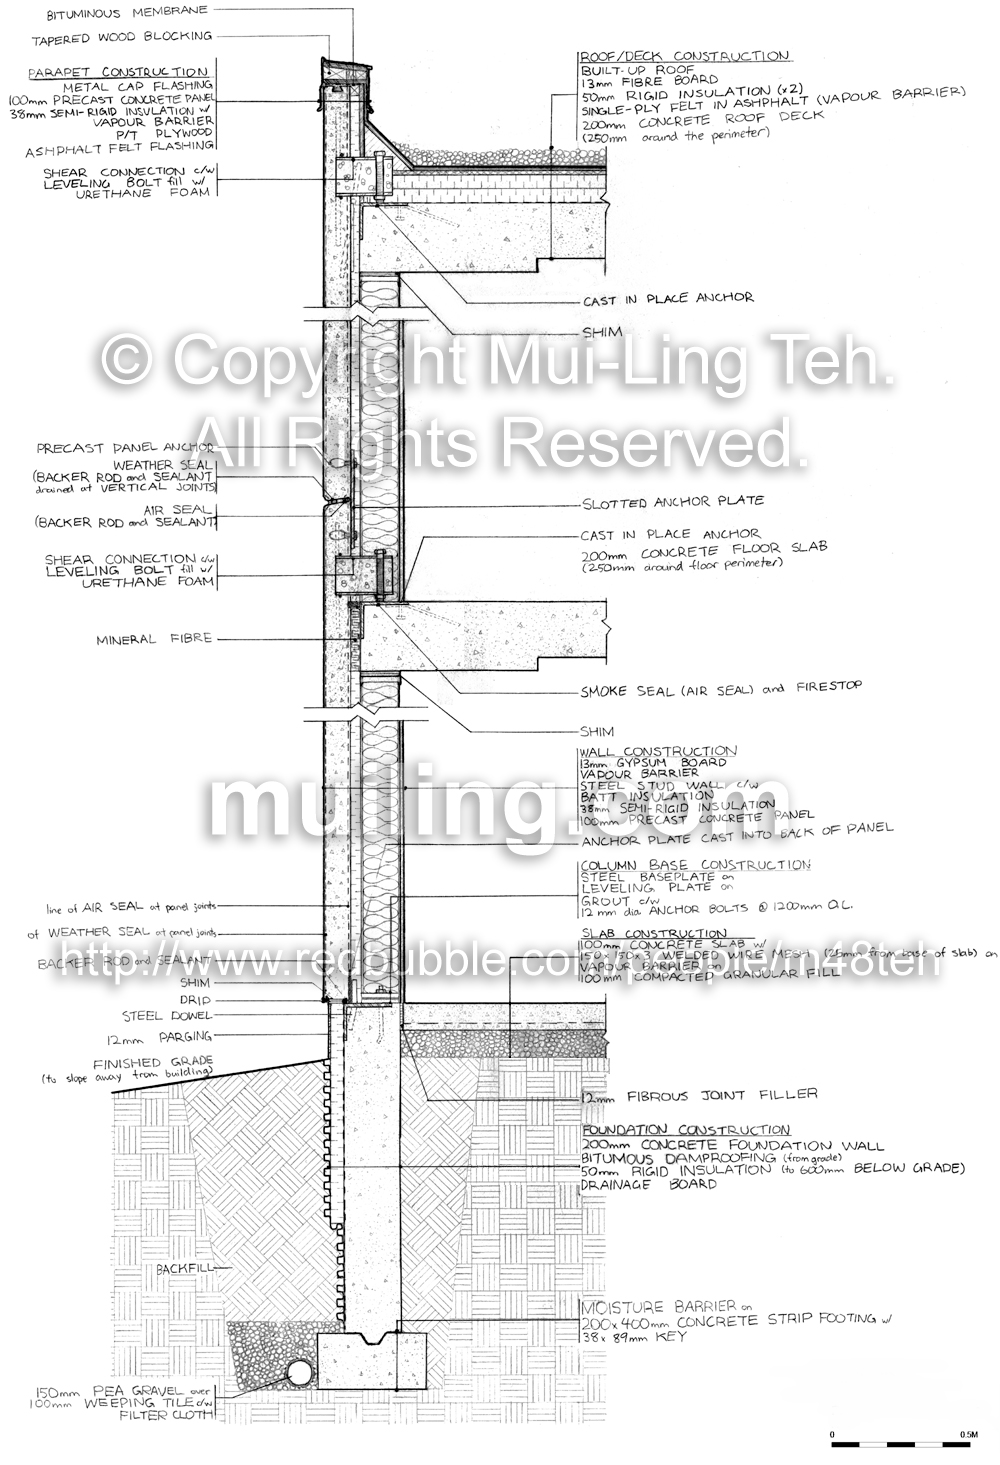 A detailed wall section drawn by Mui-Ling Teh during her first year in architecuture school.